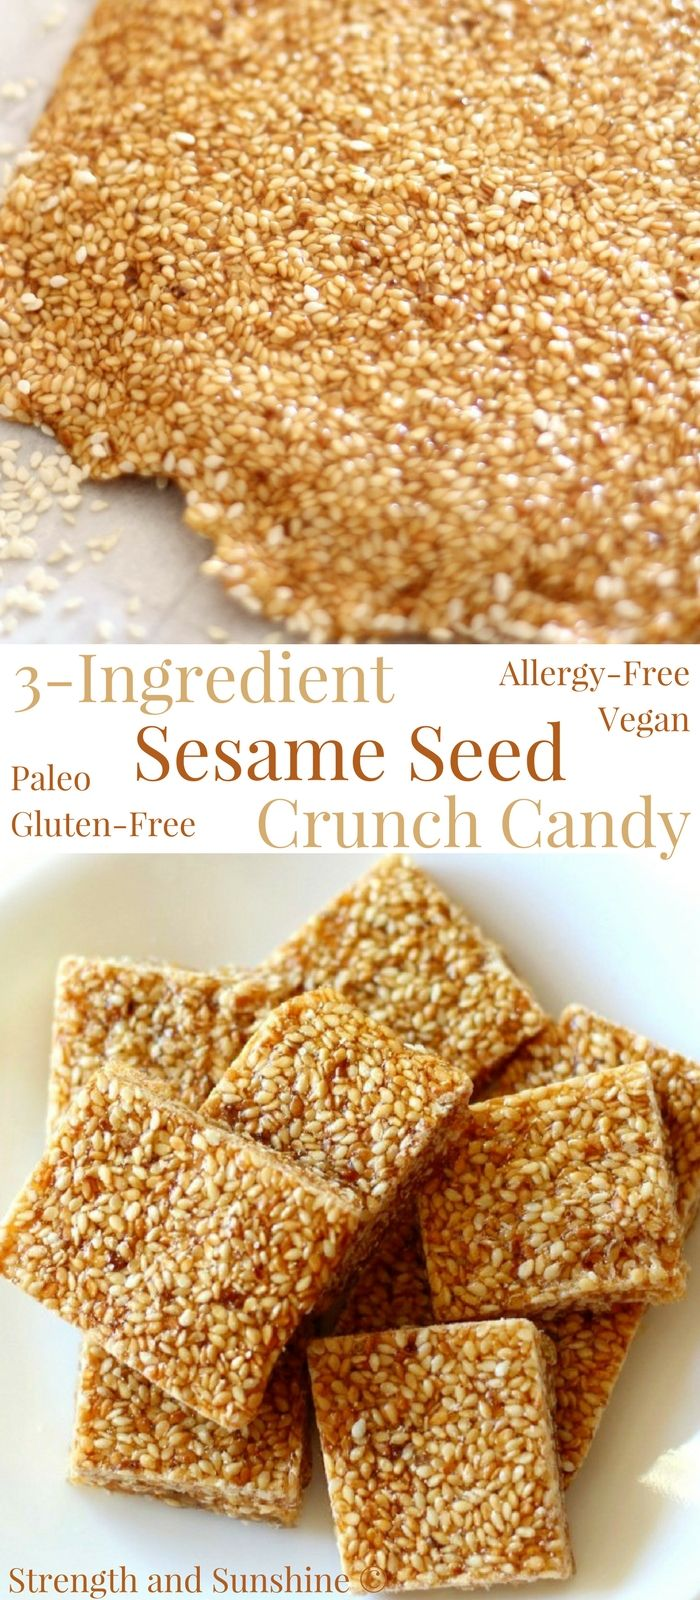 3-Ingredient Sesame Seed Crunch Candy (Gluten-Free)   Strength and Sunshine @RebeccaGF666 A popular candy recipe with many variations throughout Middle Eastern, Mediterranean, Indian, and Asian cuisines. This 3-Ingredient Sesame Seed Crunch Candy is perfectly sweet, nutty, gluten-free, paleo, optionally vegan, and top-8 allergy-free! Just toasted sesame seeds, honey, and sugar! Easy to gift or munch! #sesameseeds #sesamecandy #candy